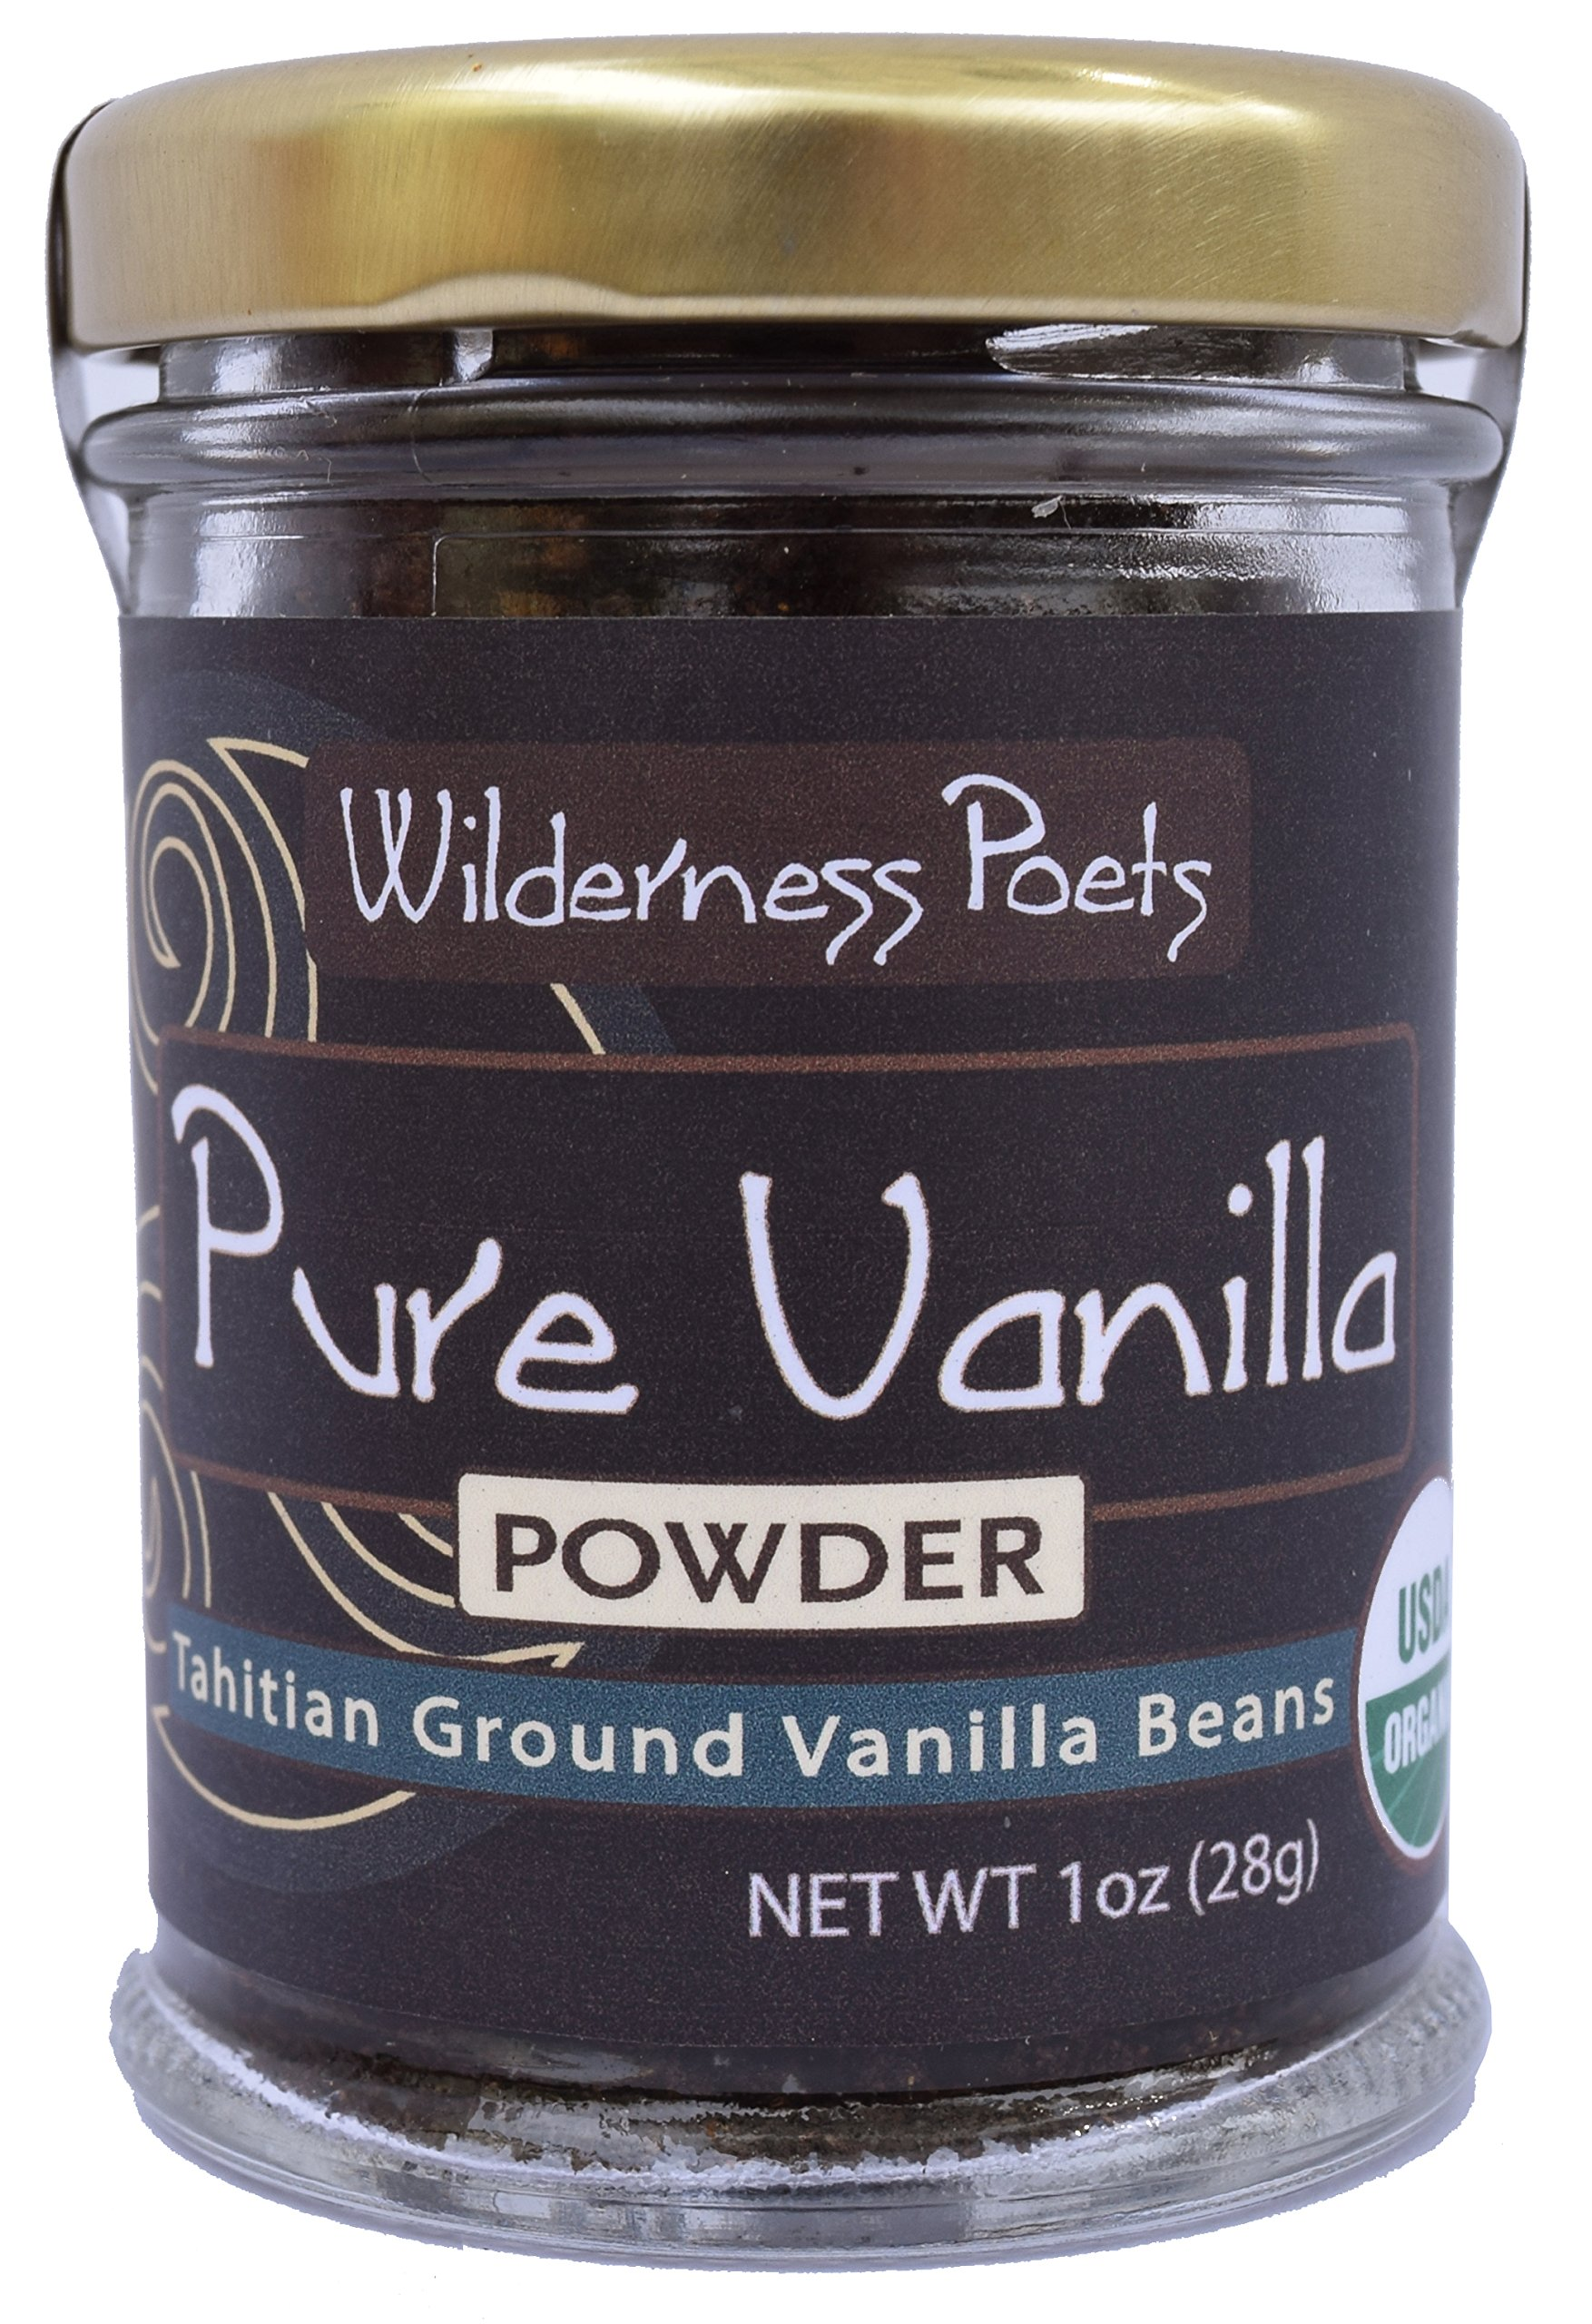 Wilderness Poets Pure Vanilla Powder - Organic Vanilla Bean Powder - Tahitian Variety, 1 Ounce (28 Grams)